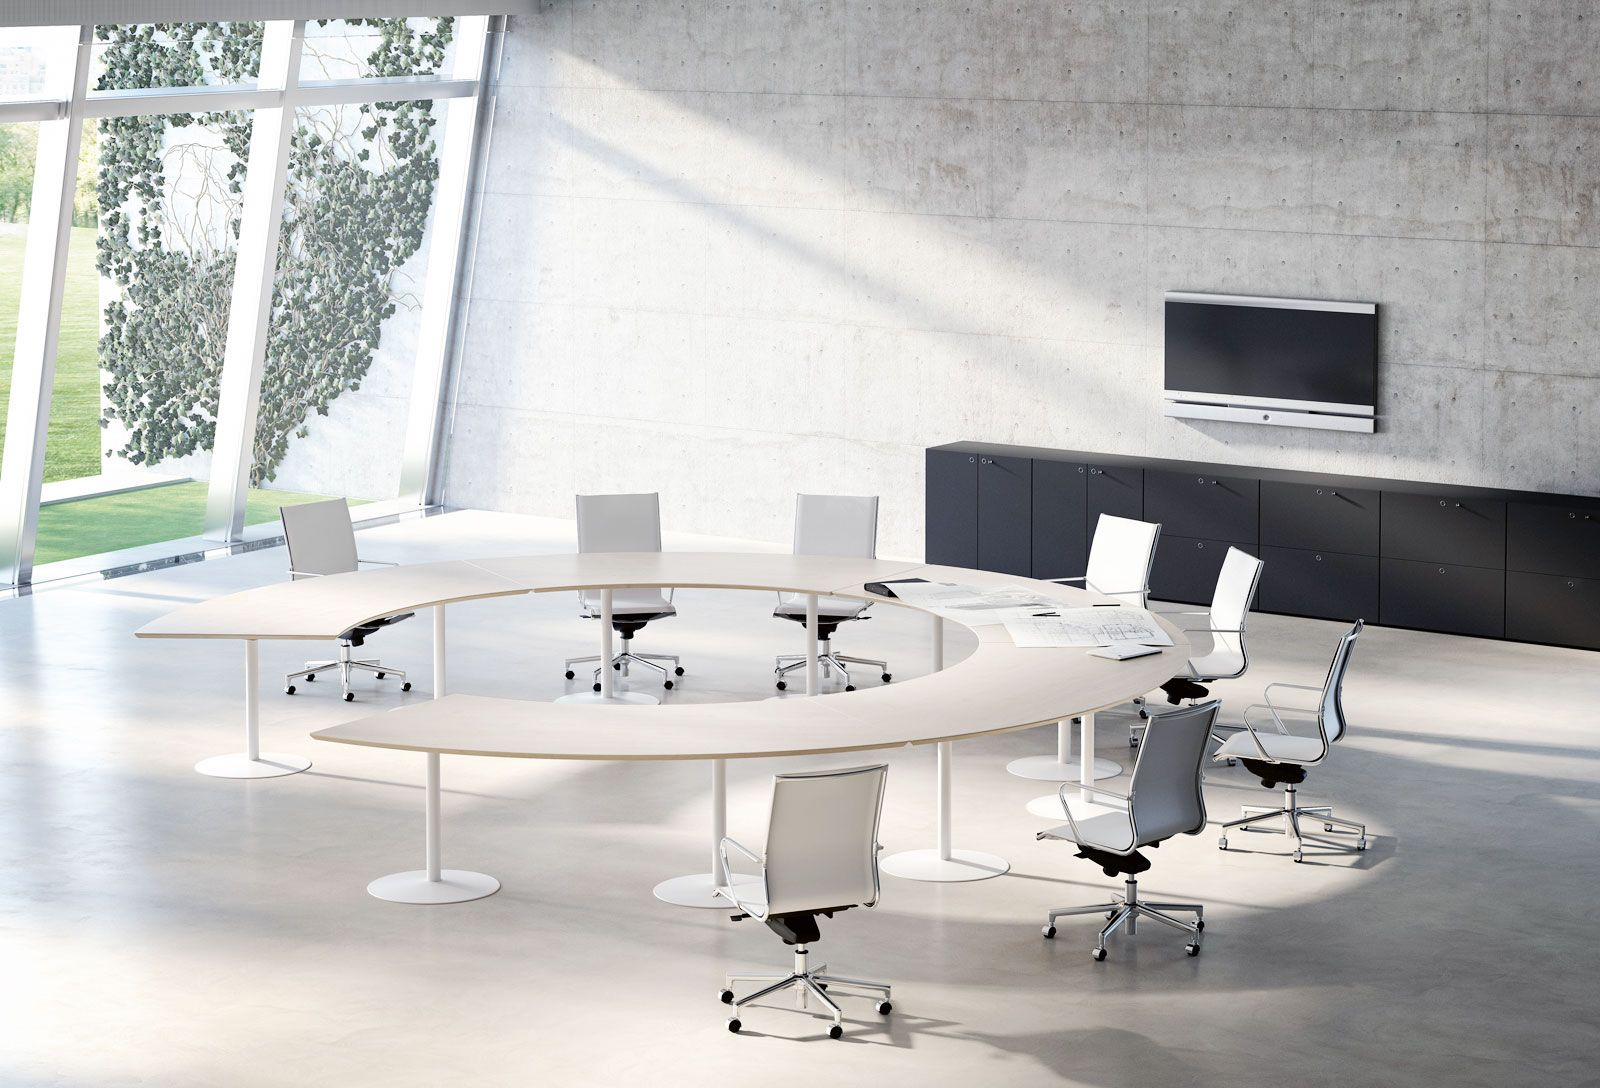 Meeting Room Tables Large Round Meeting Room Table Spaceist Co Uk Office Design